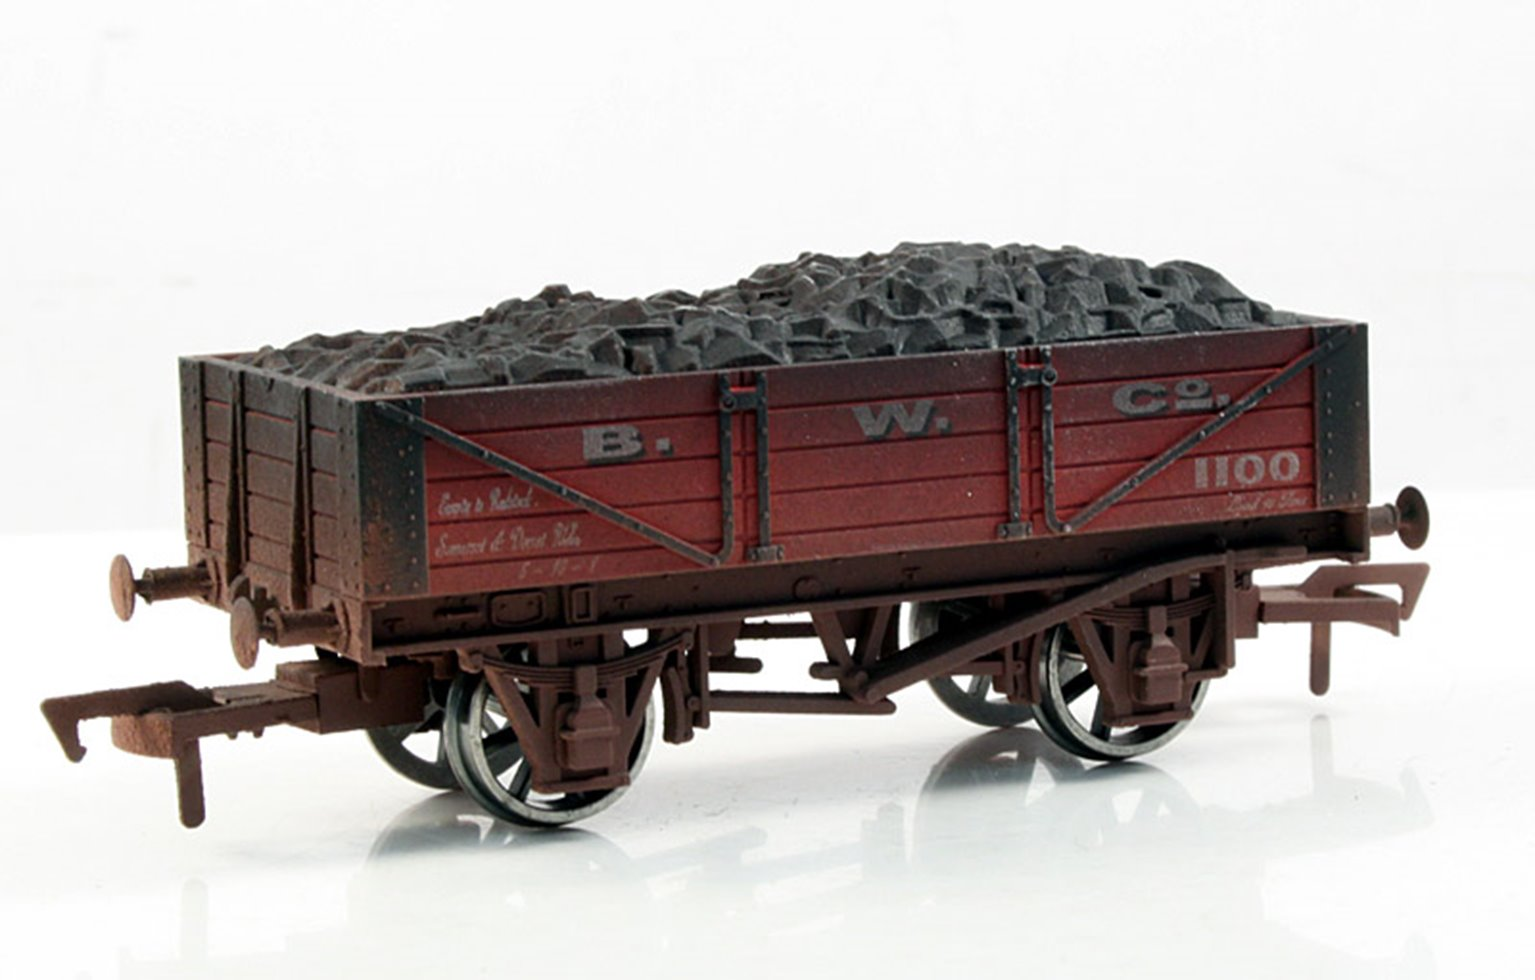 B W Co 4 Plank Wagon - Weathered